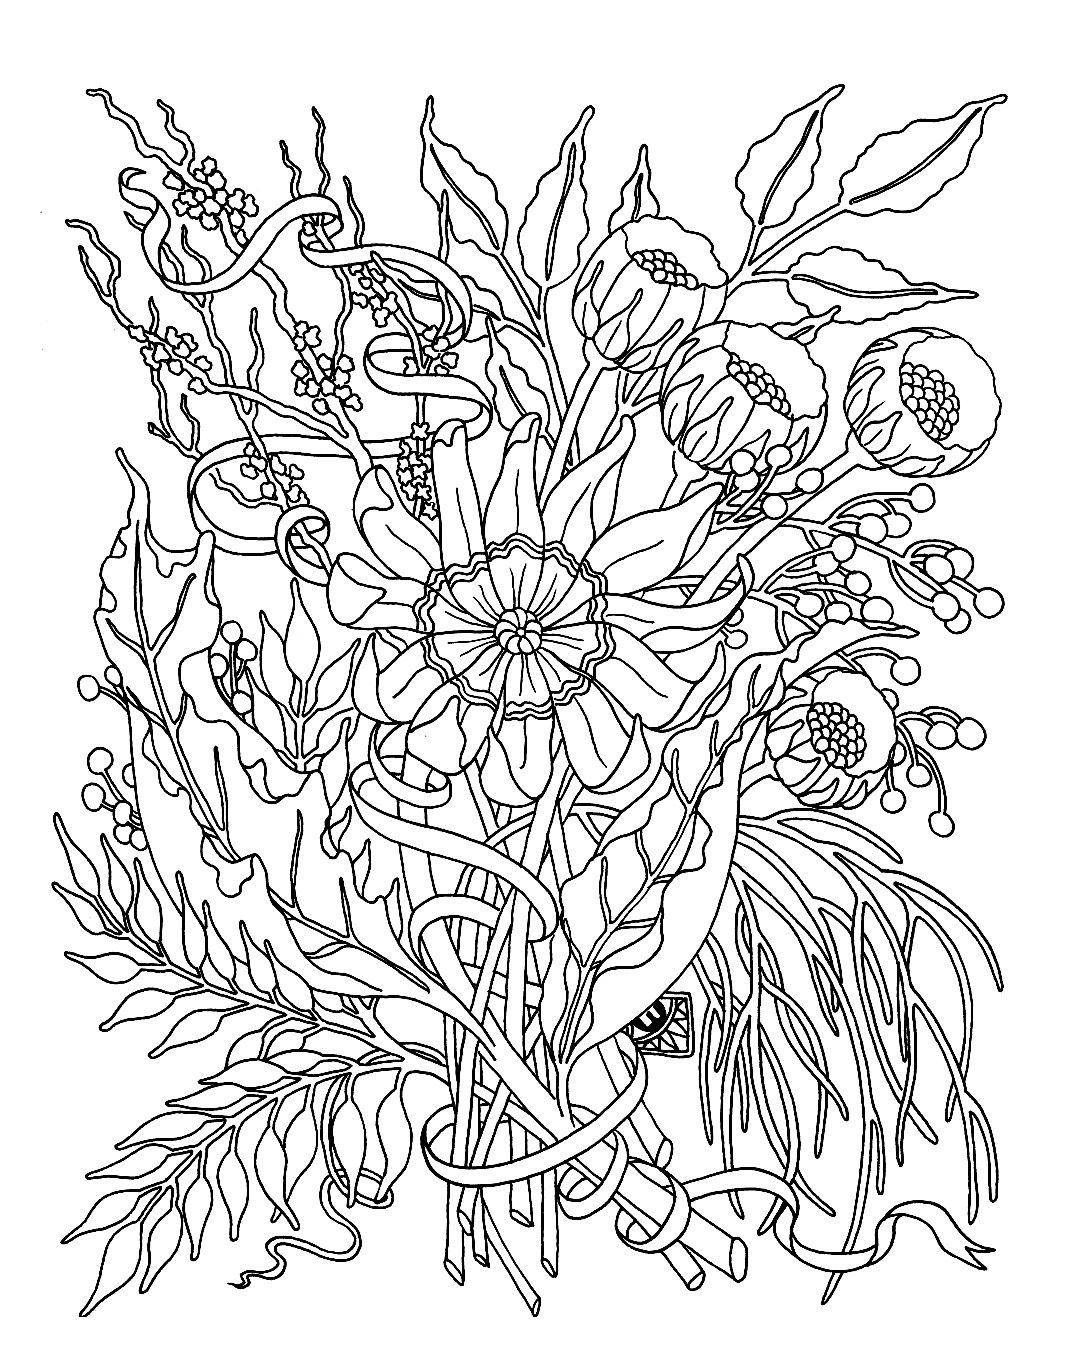 Free Coloring Page Coloring For Adult Flowers Garden Still Some Beautiful Flowers Of The